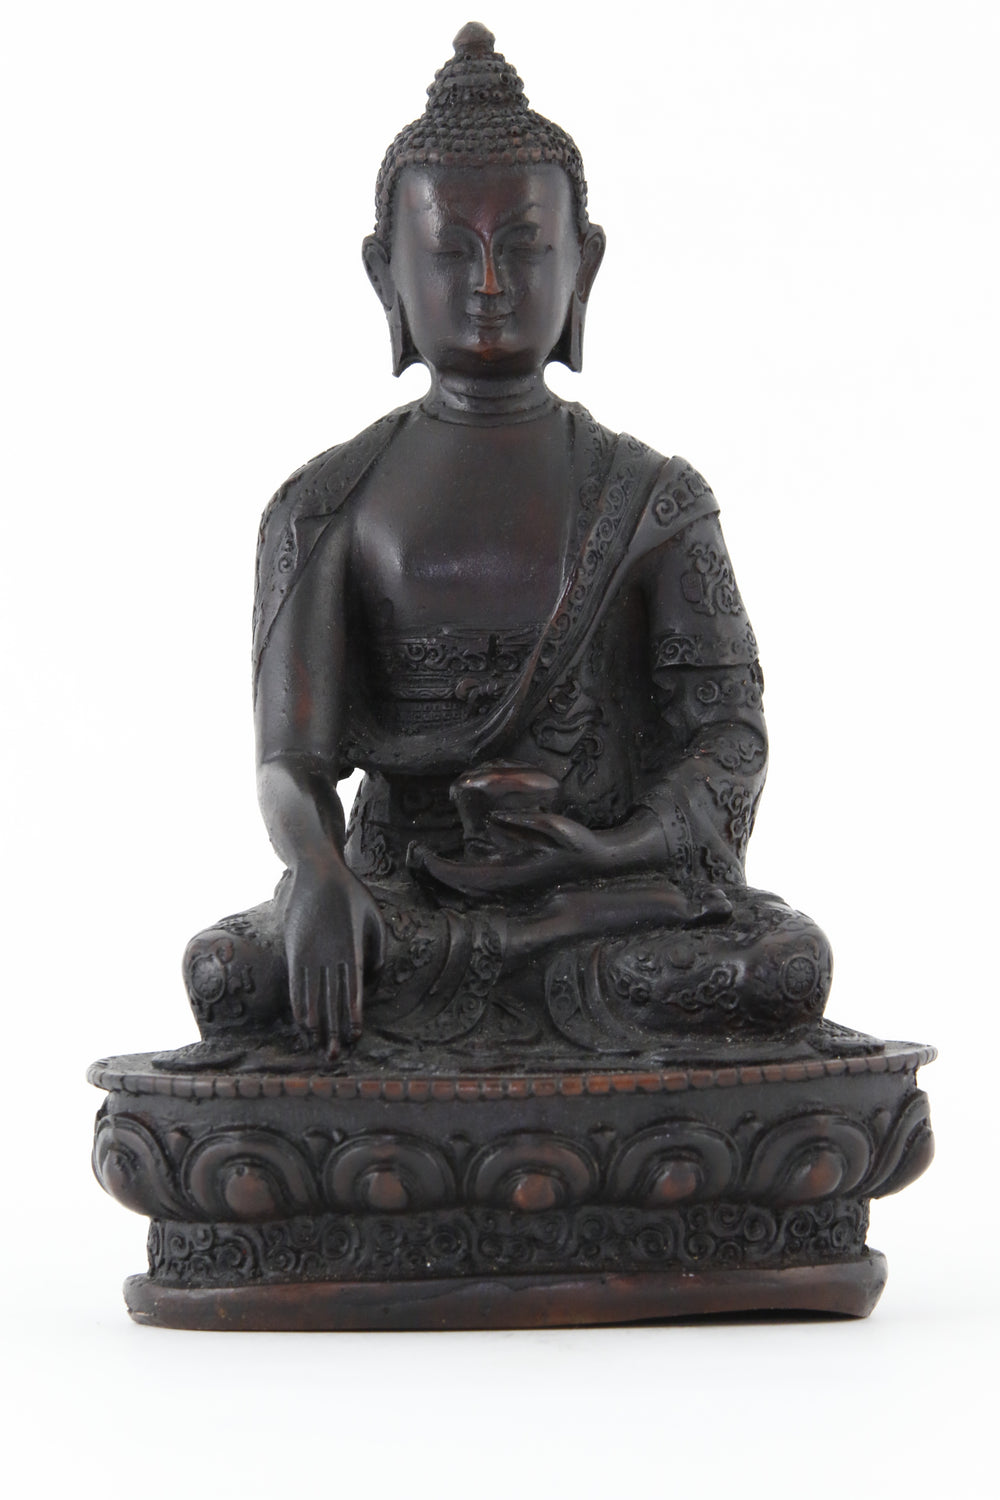 EARTH TOUCHING BUDDHA STATUE DARK LARGE FRONT VIEW